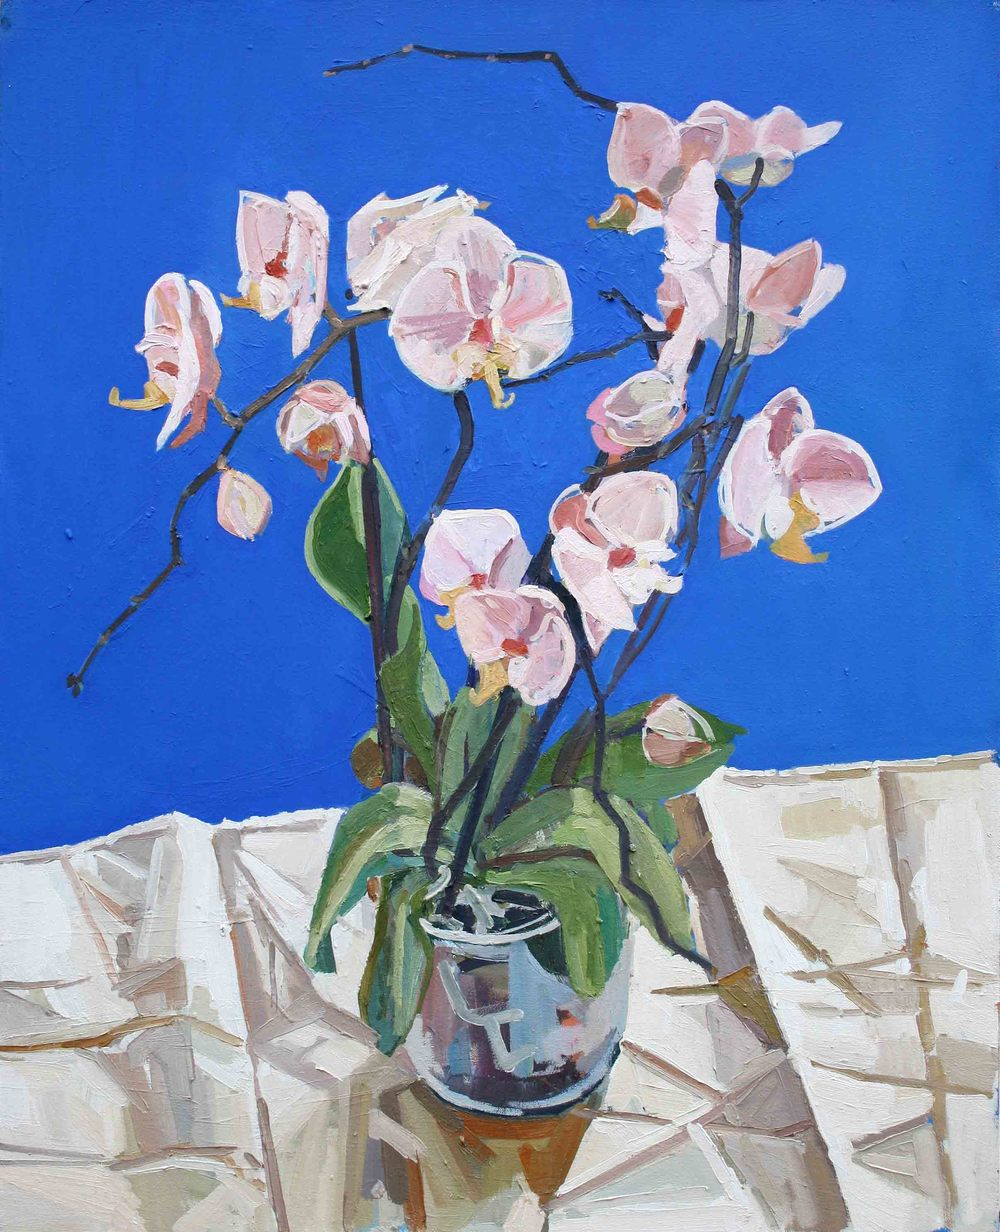 85 x 75 cm White Orchids, Oil on Canvas